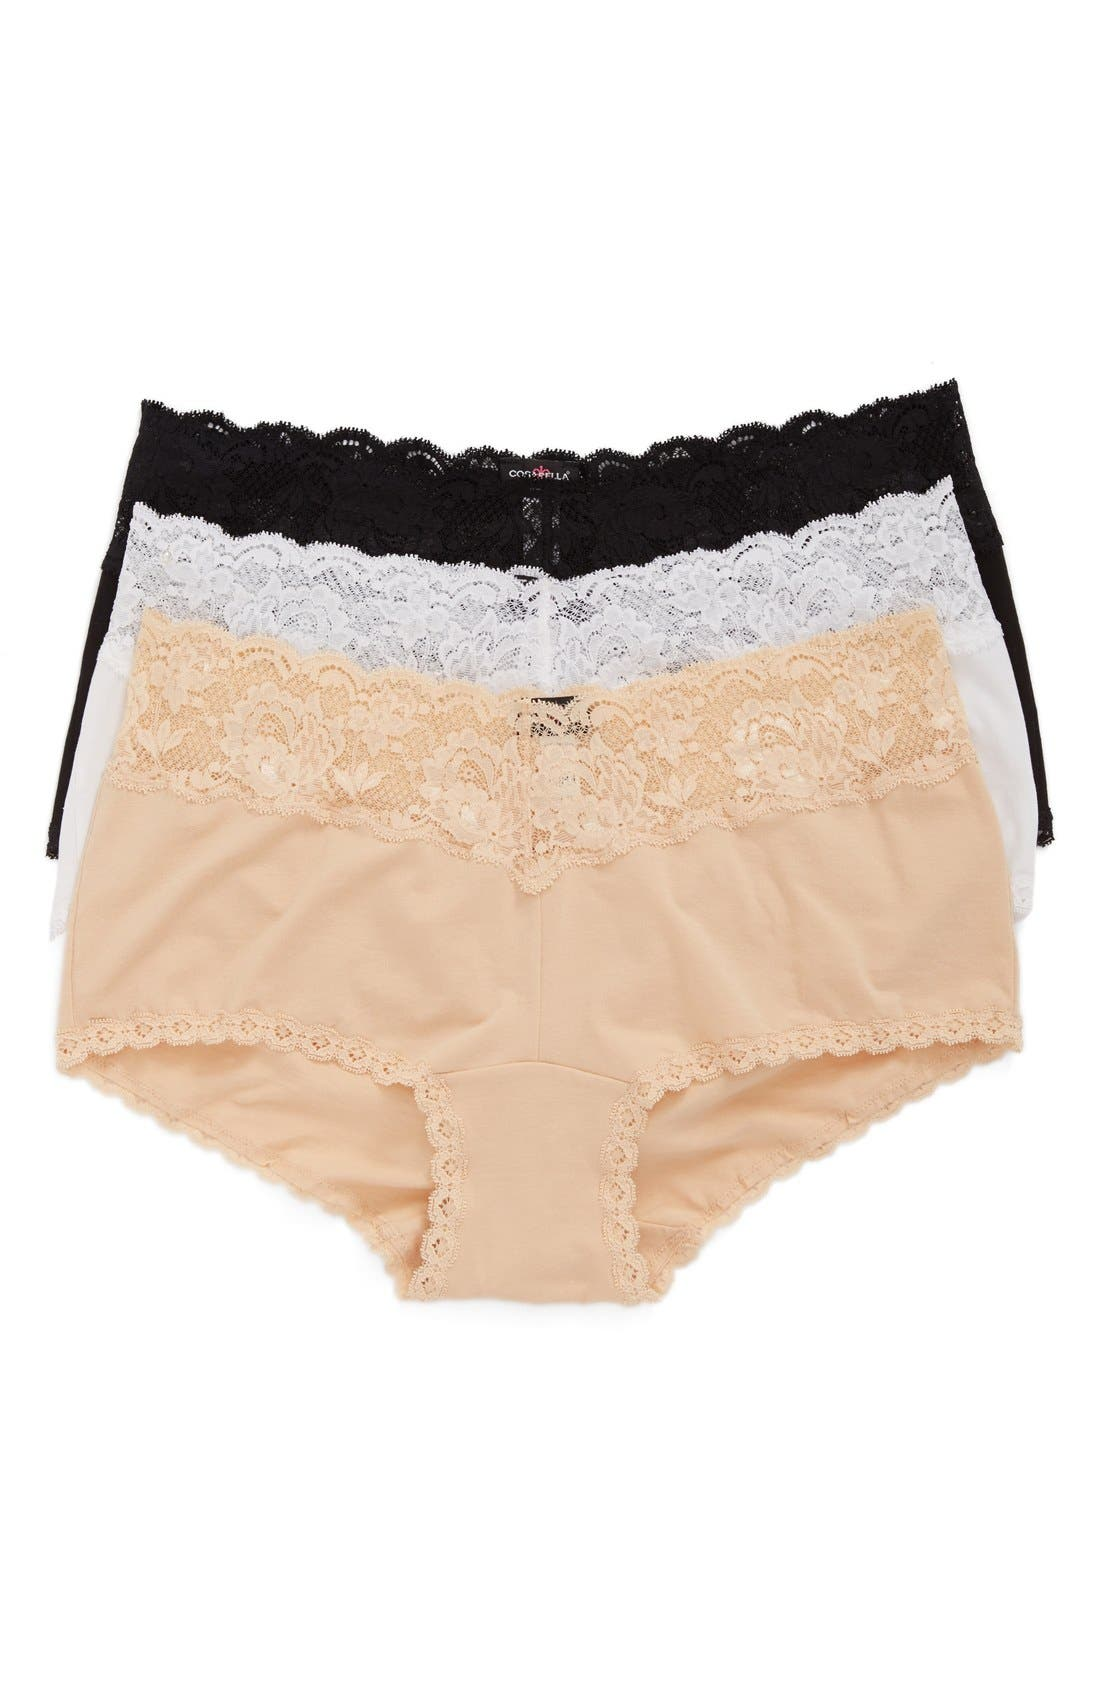 Cosabella 'Cheekie' Lace Trim Briefs (Plus Size) (3-Pack) (Online Only)